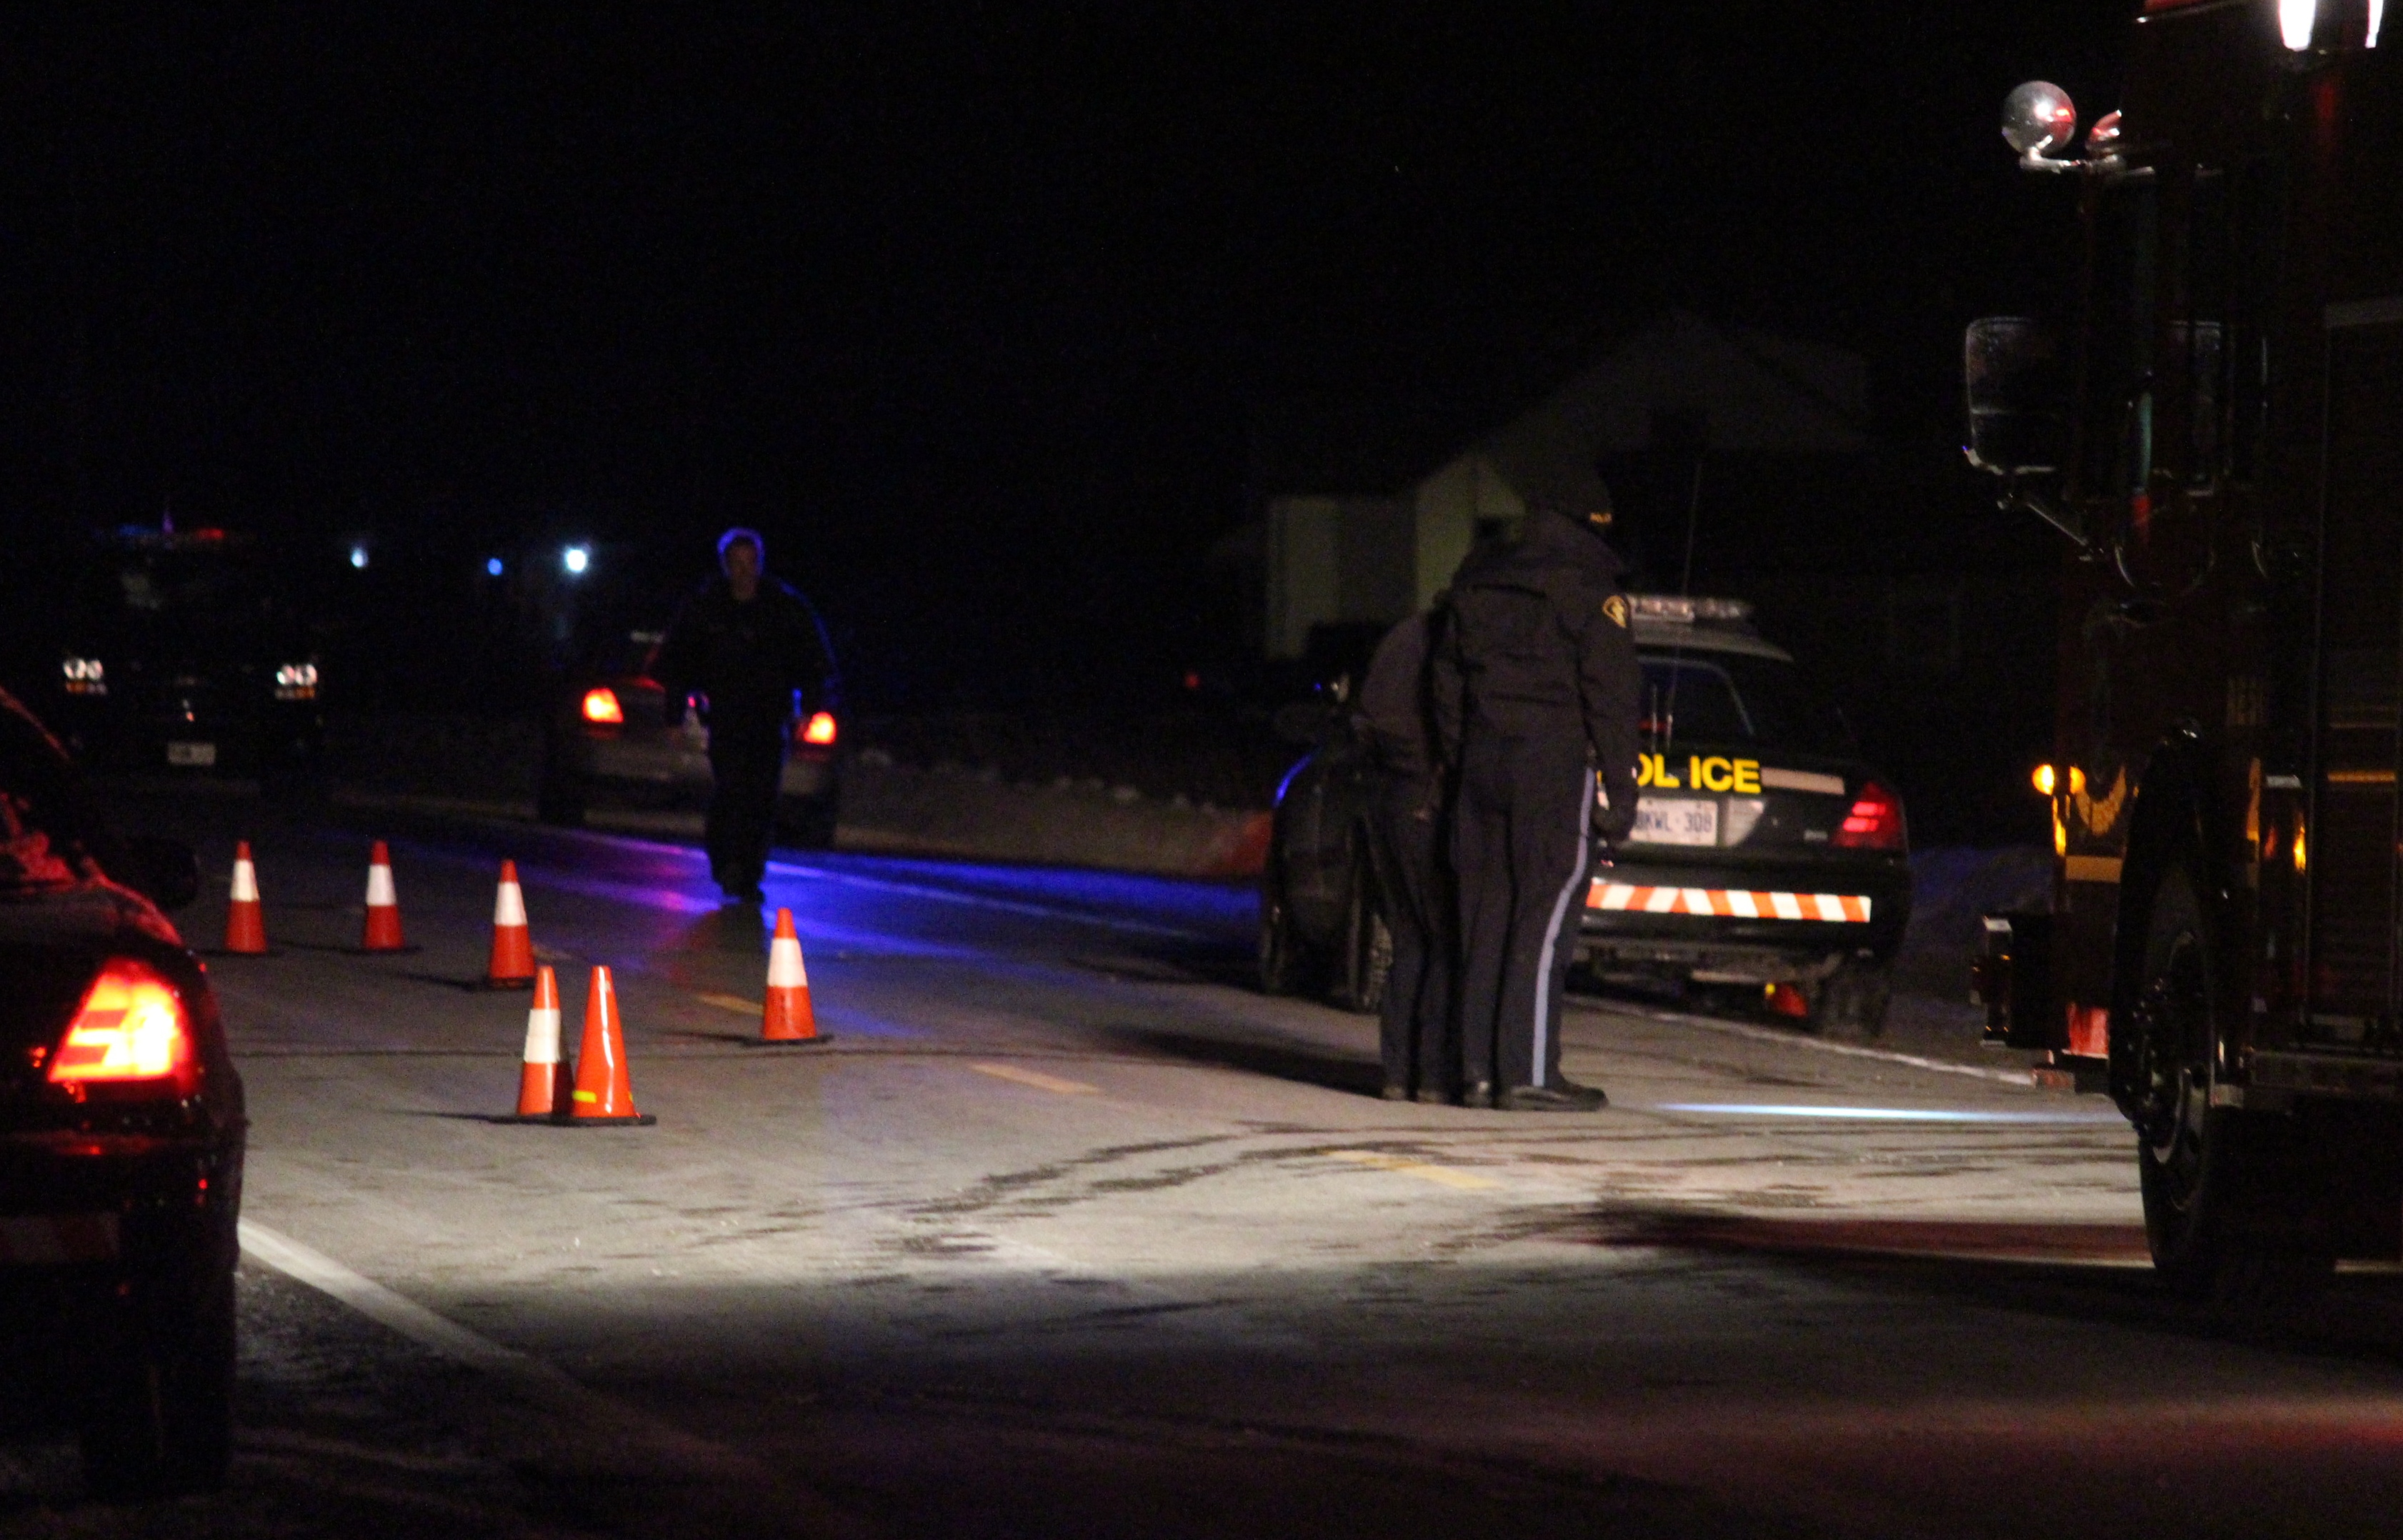 OPP officers investigate a fatal incident on Walker Rd. in Oldcastle, February 9, 2015. (Photo by Mike Vlasveld)